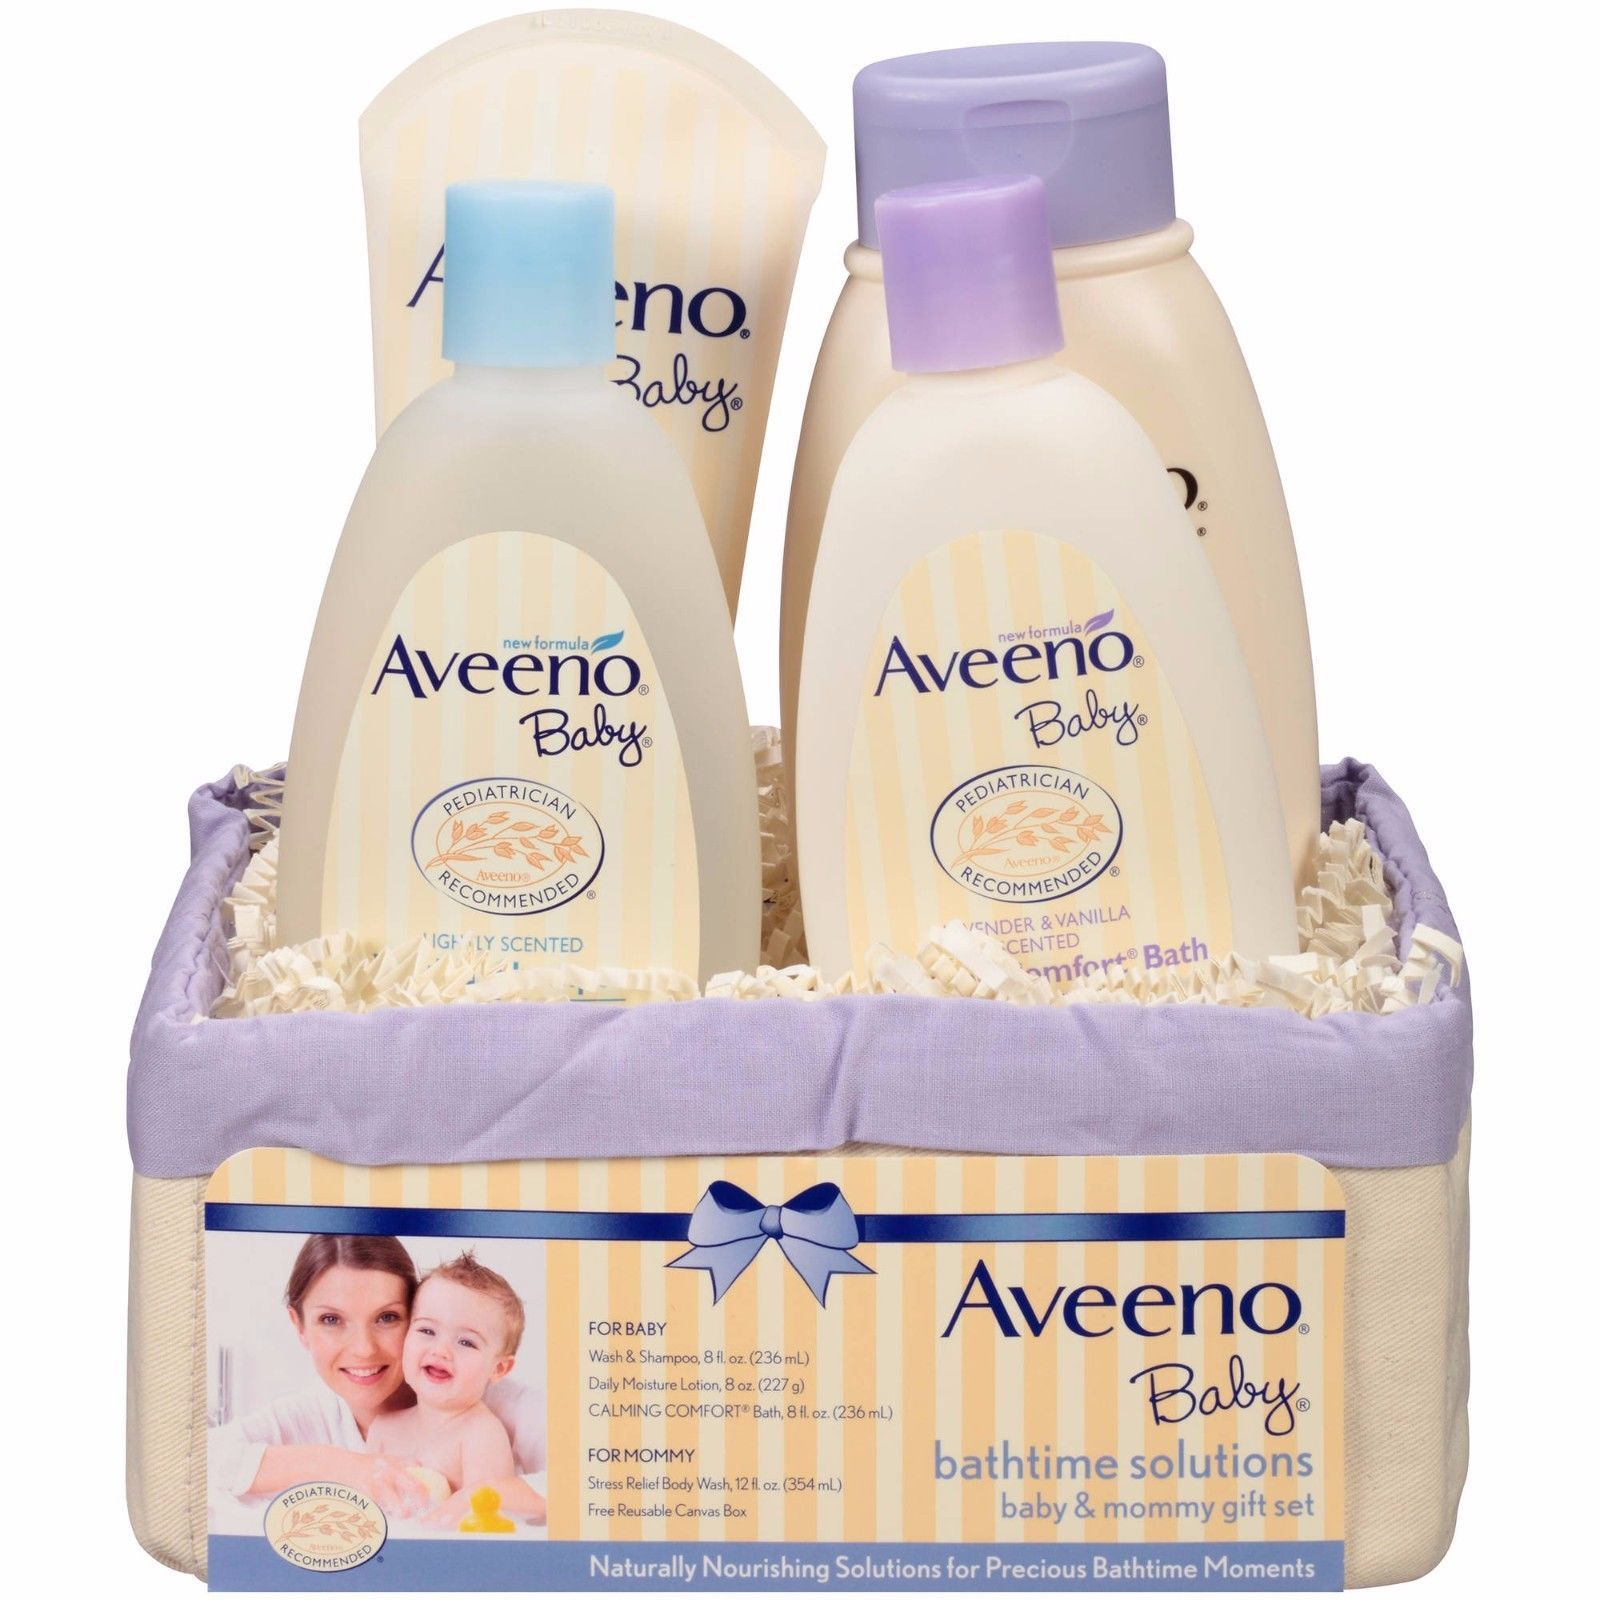 Aveeno Baby Daily Bathtime Solutions Gift Set and 50 similar items